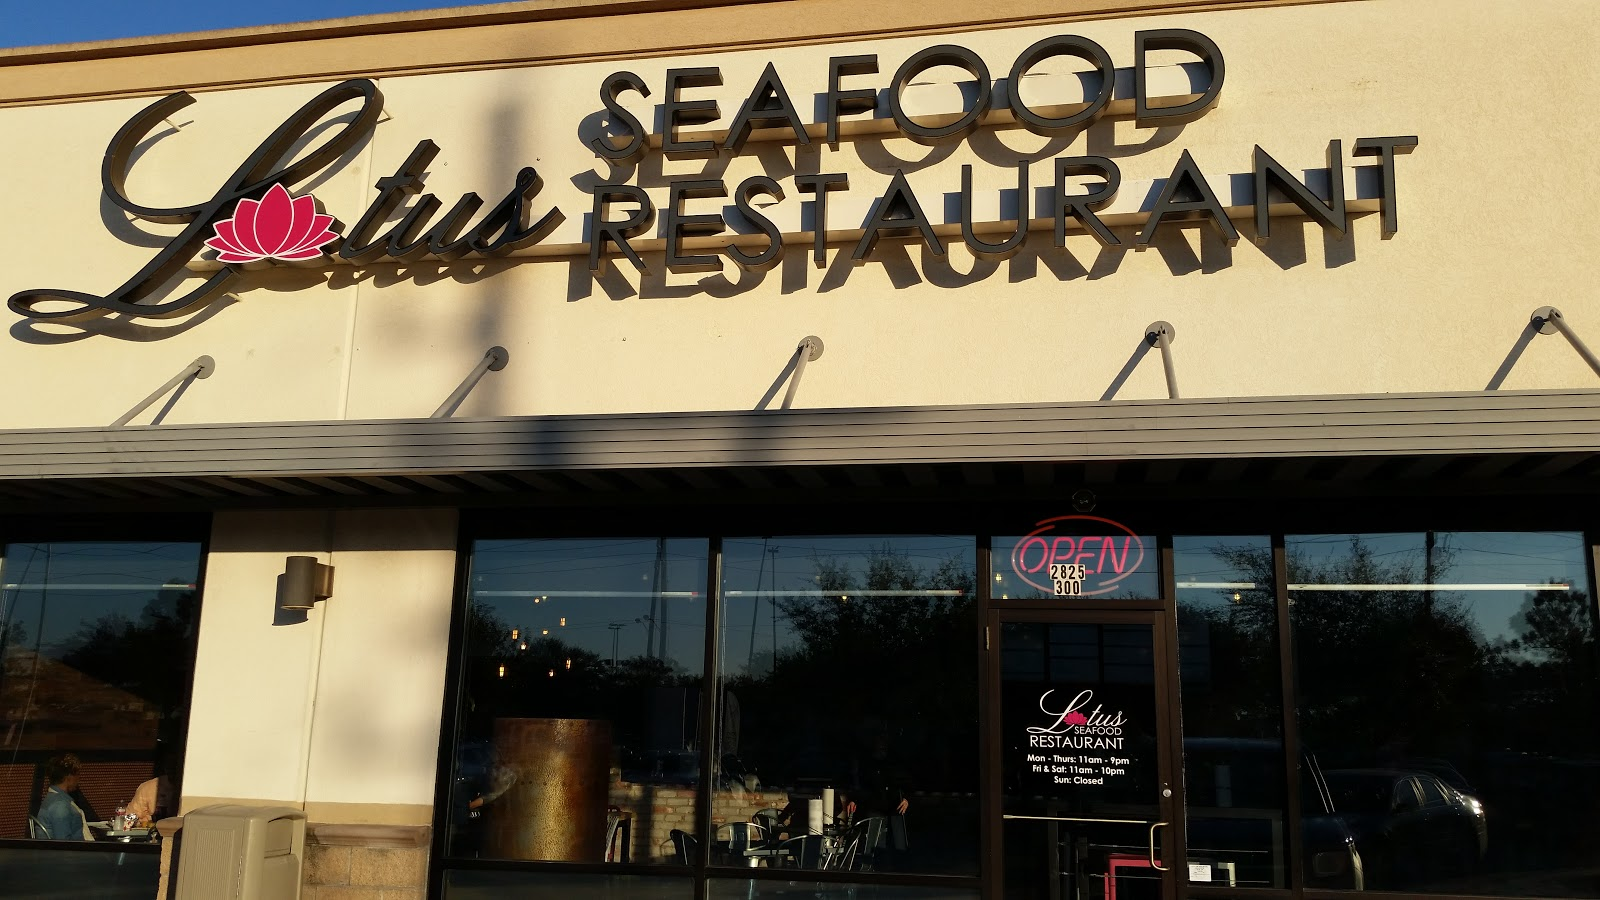 Review lotus seafood restaurant on for Fish market richmond va